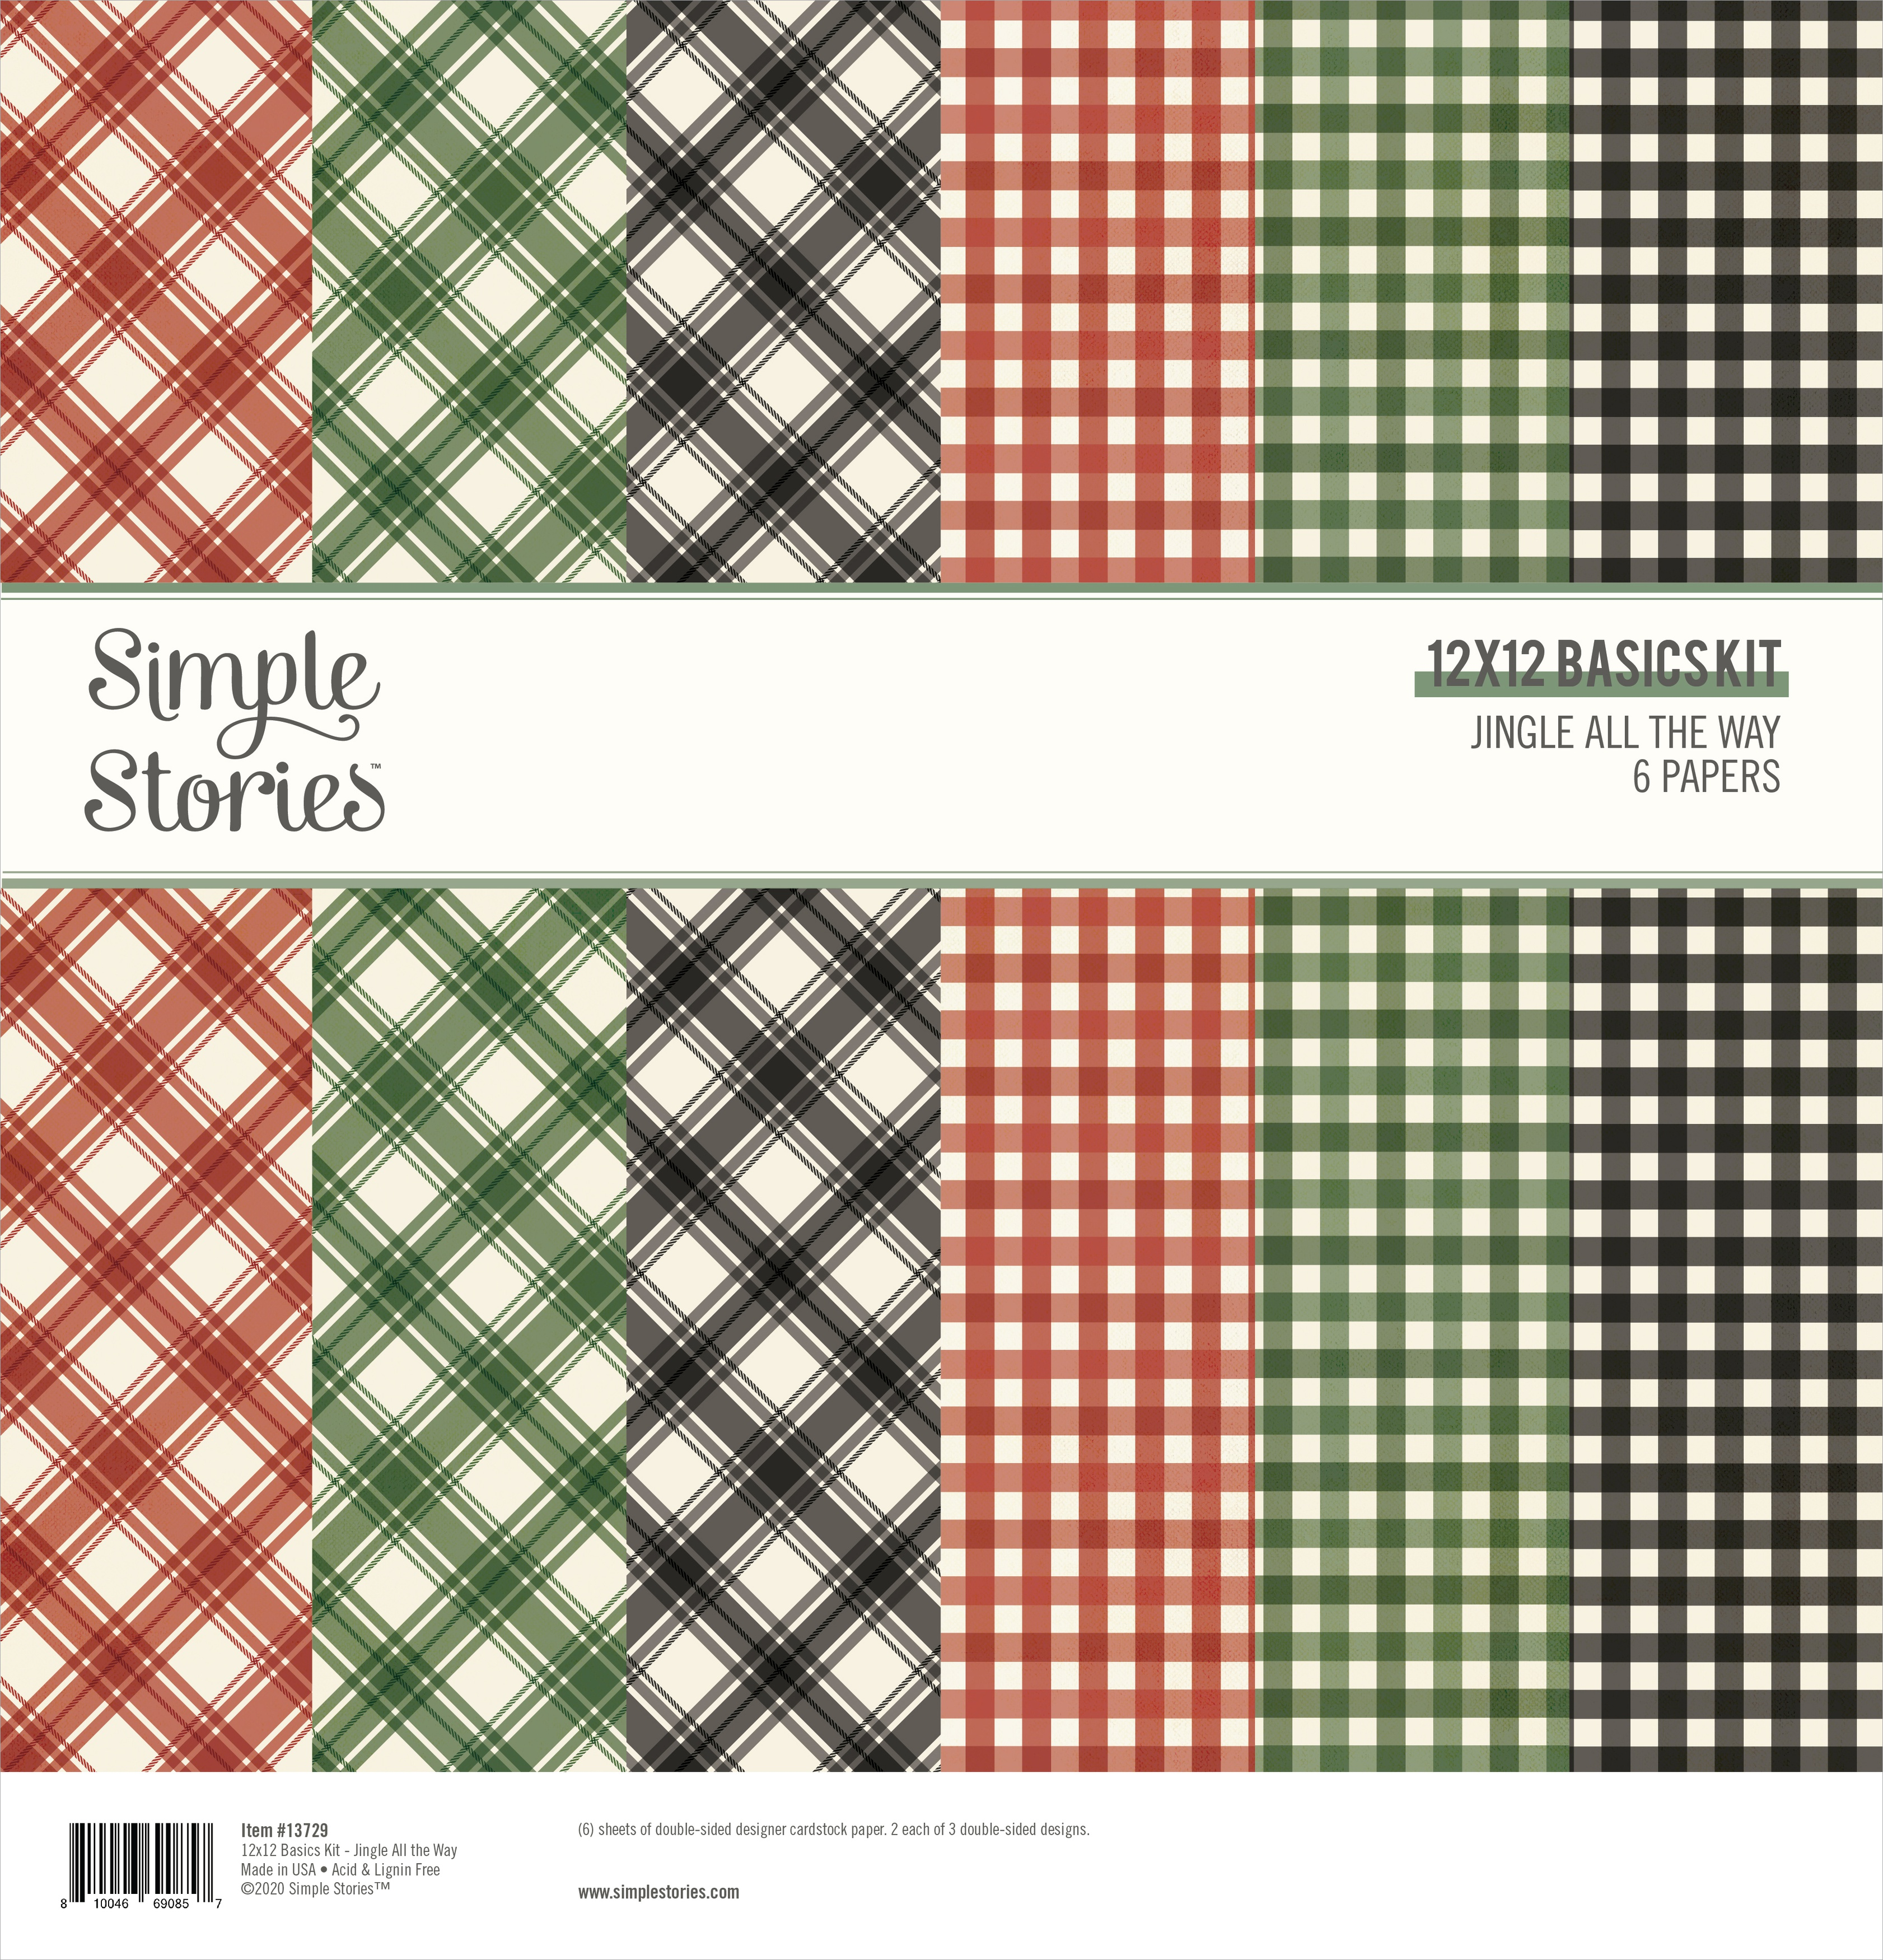 Simple Stories Basics Double-Sided Paper Pack 12X12 6/Pkg-Jingle All The Way